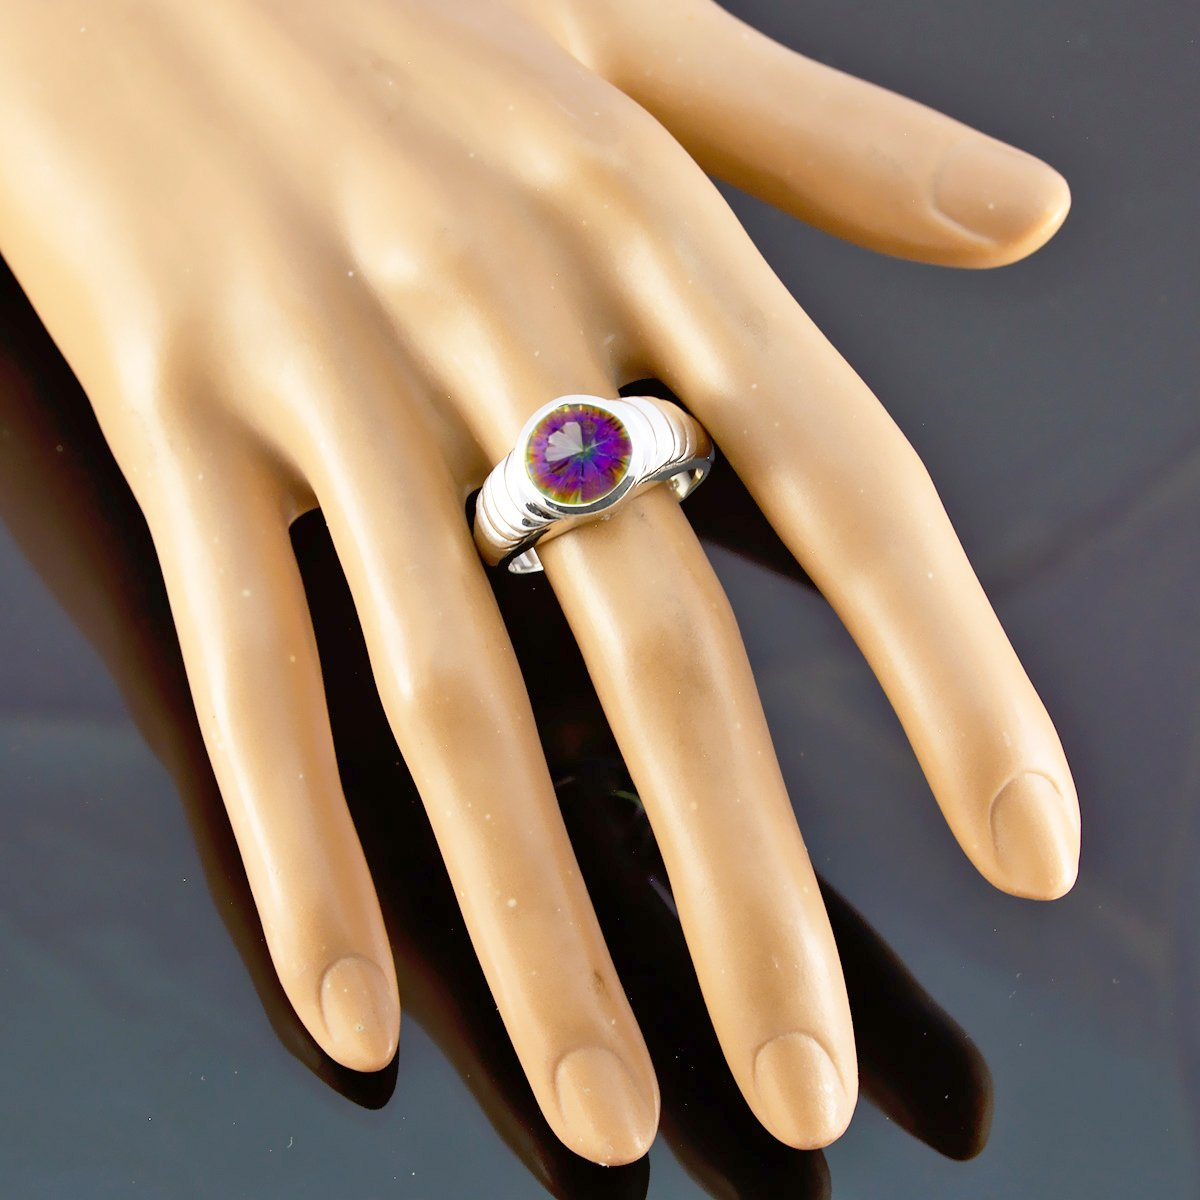 Jewelry Accessories Gift for Husband Boho Ring 925 Silver Blue Mystic Quartz Lovely Gemstones Ring Lovely Gemstones Round Faceted Mystic Quartz Ring